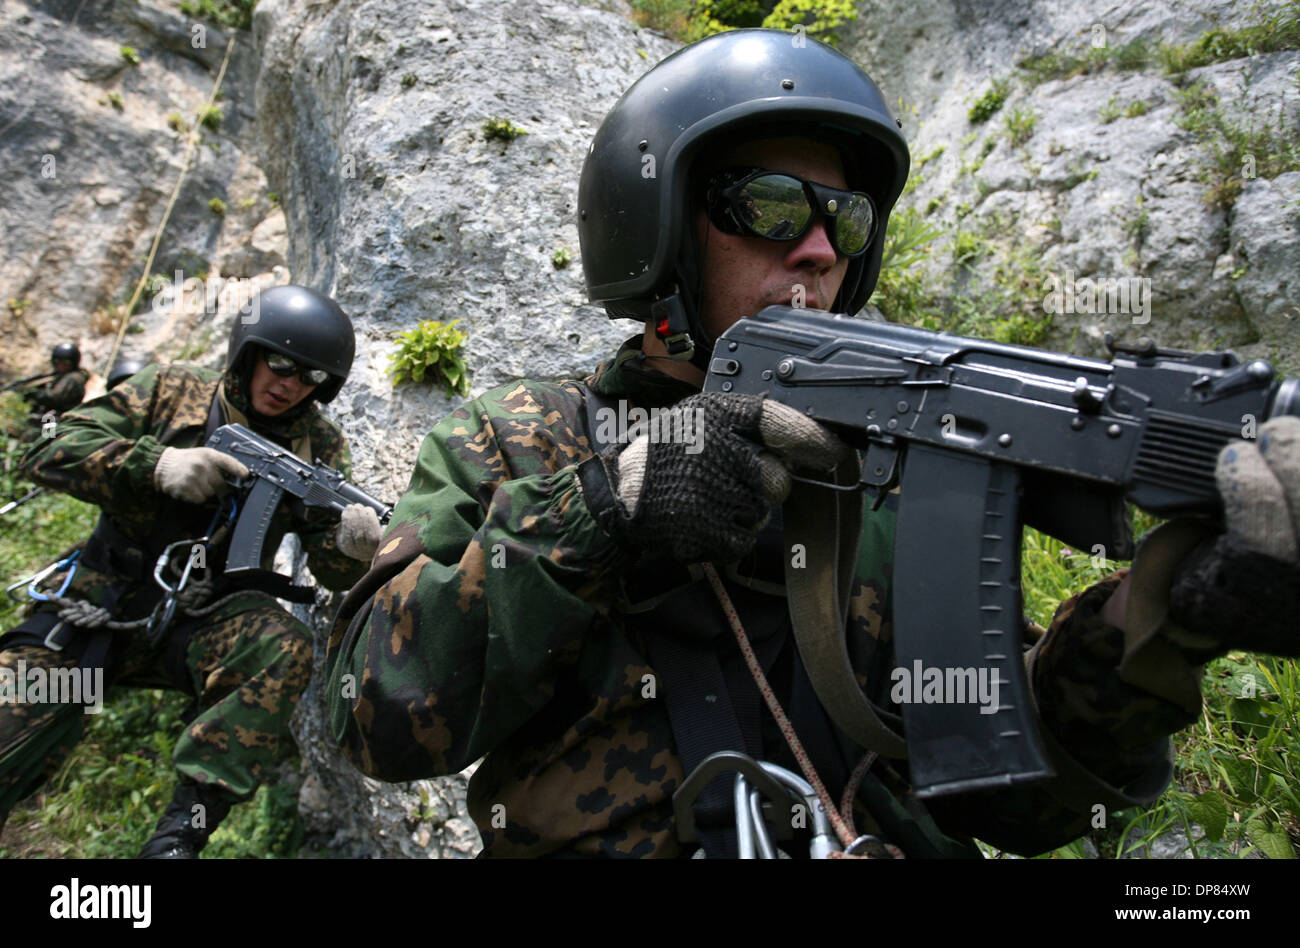 Members of the `GRU`(russian army central military intelligence department) Special Forces unit from Novovsibirsk undergo training at the `Hatsavita` mountain training center for special forces units located near the southern city of Labinsk, Russia, on Thursday, July 27, 2006.(Credit Image: © PhotoXpress/ZUMA Press) RESTRICTIONS: North and South America Rights ONLY! - Stock Image